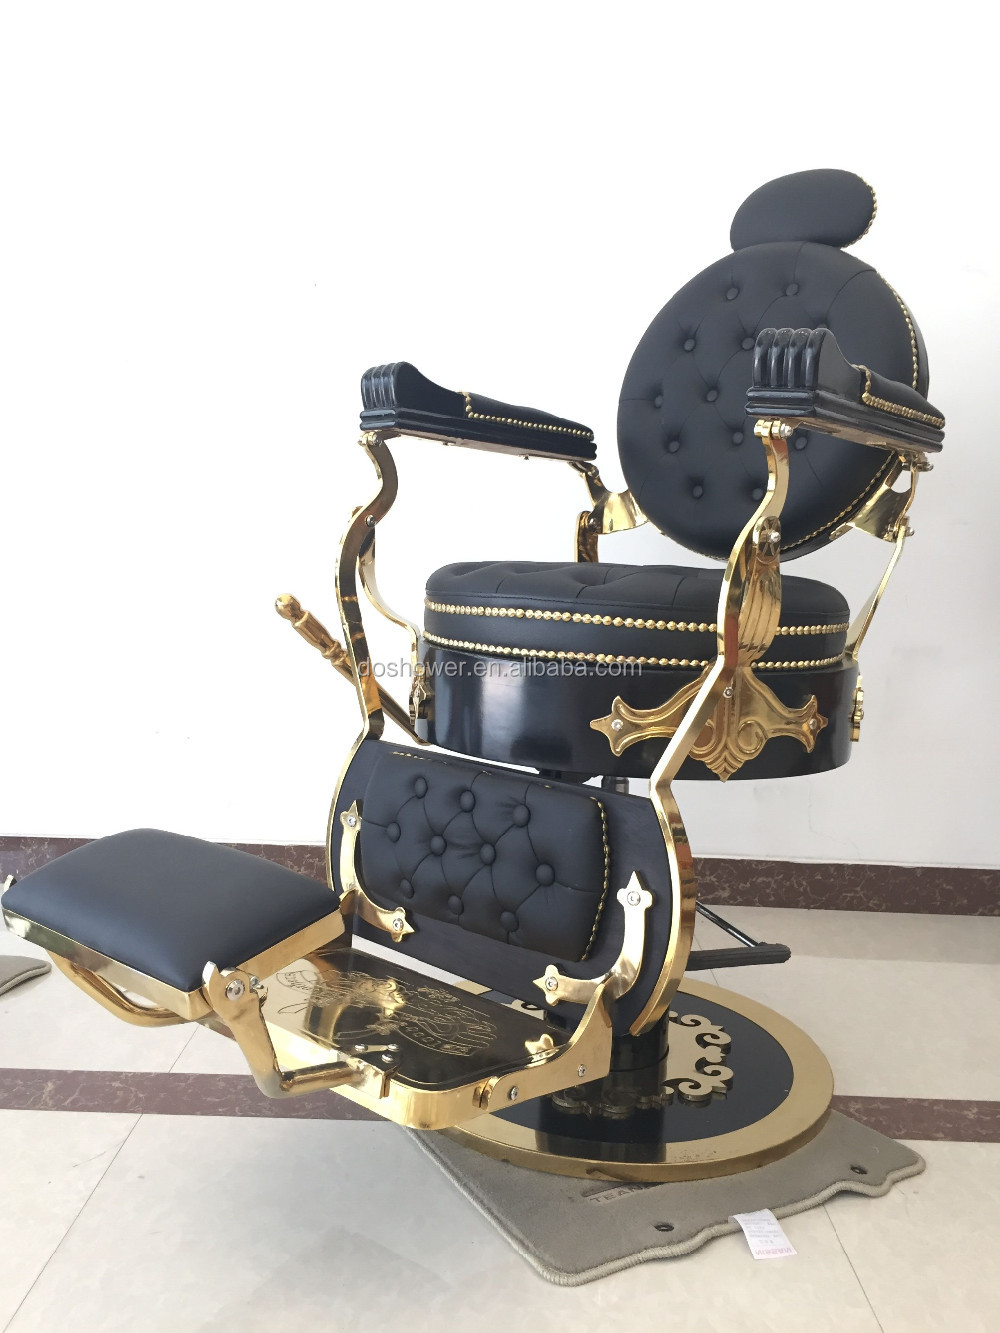 Doshower Barber Chair Dimensions Of Barber Chair Footrest